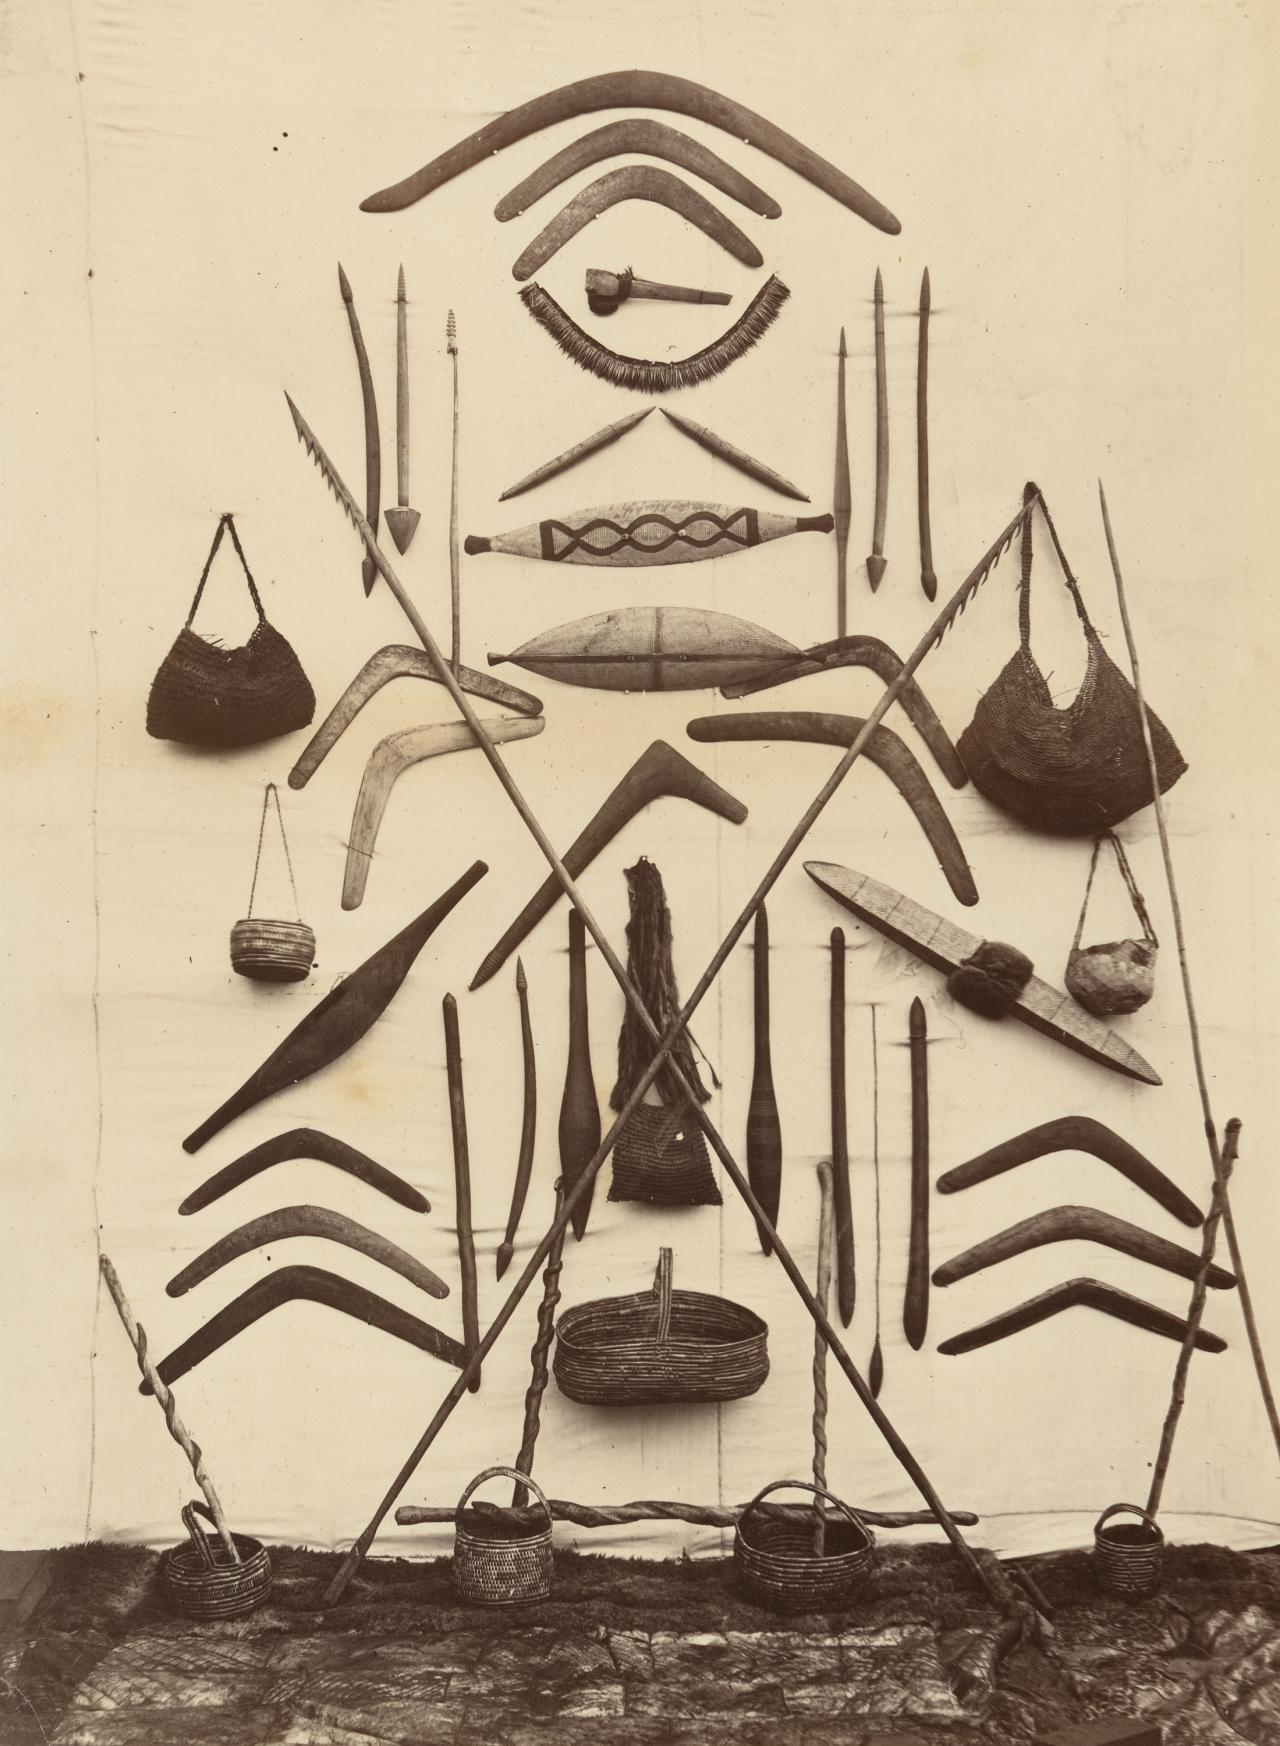 Victorian Aboriginals' war implements, Coranderrk